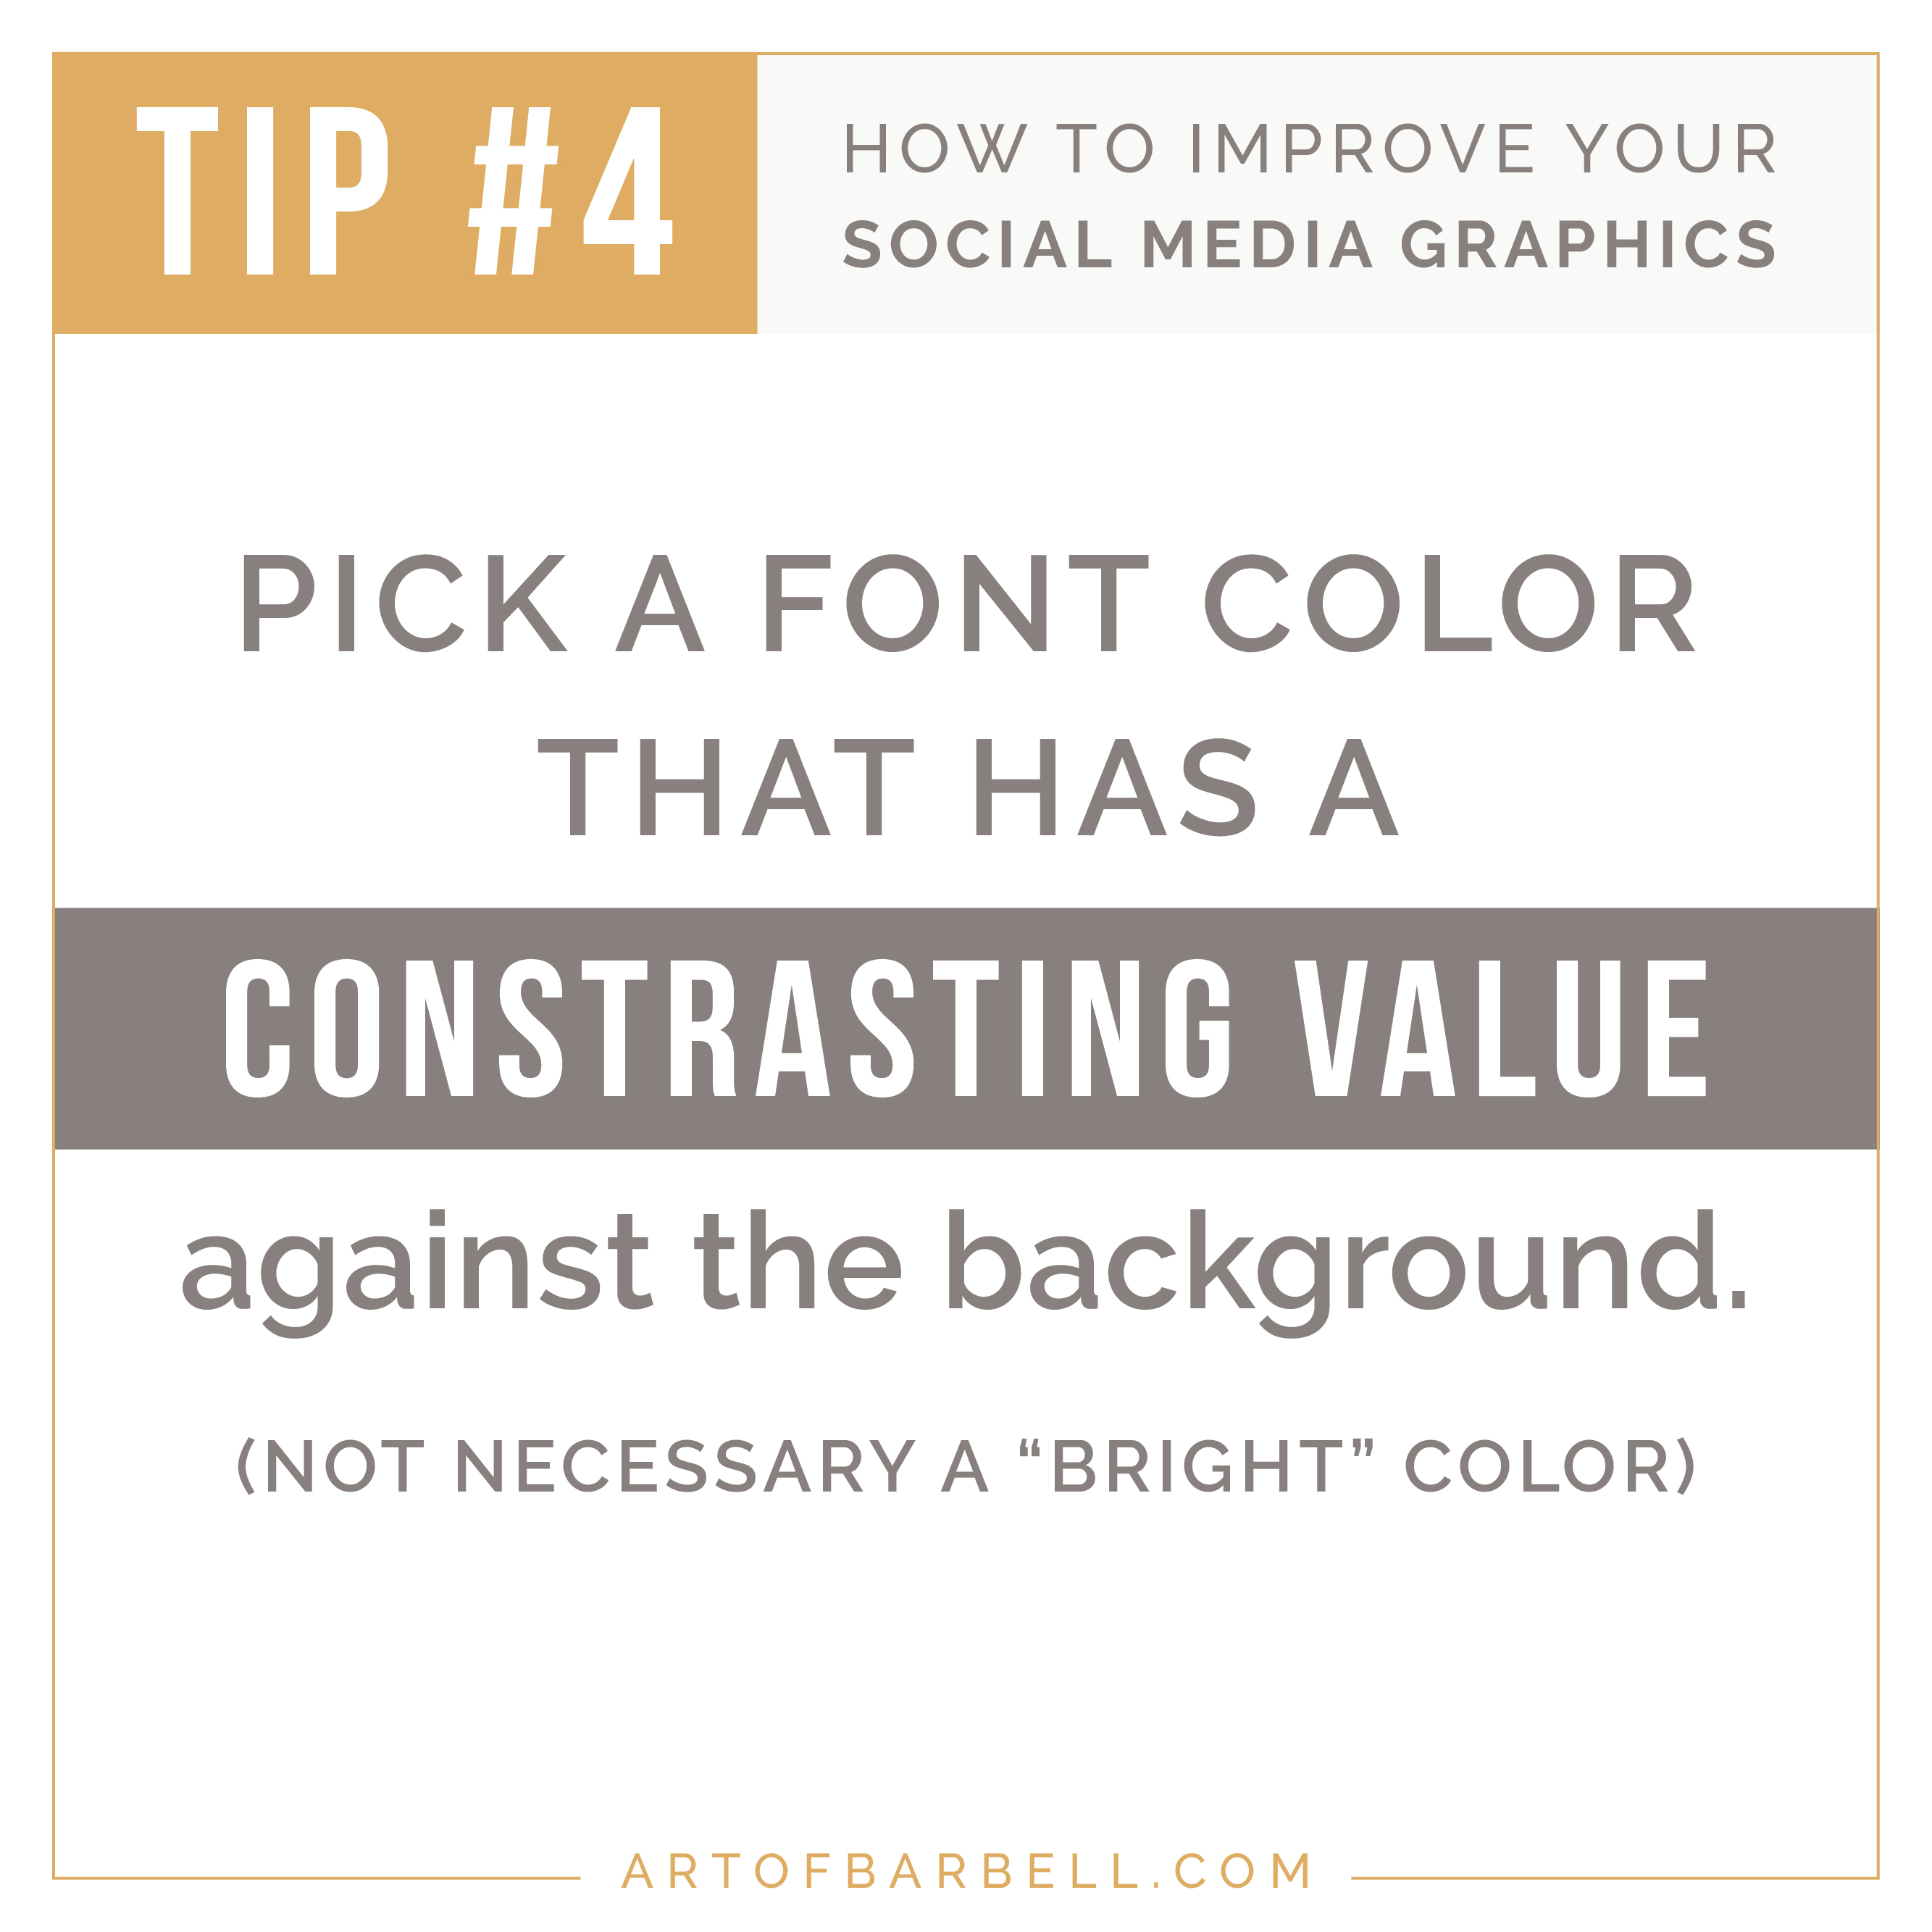 Tips for Creating Better Social Media Graphics: TIp #4 Use a Font Color that Contrasts Against the Background